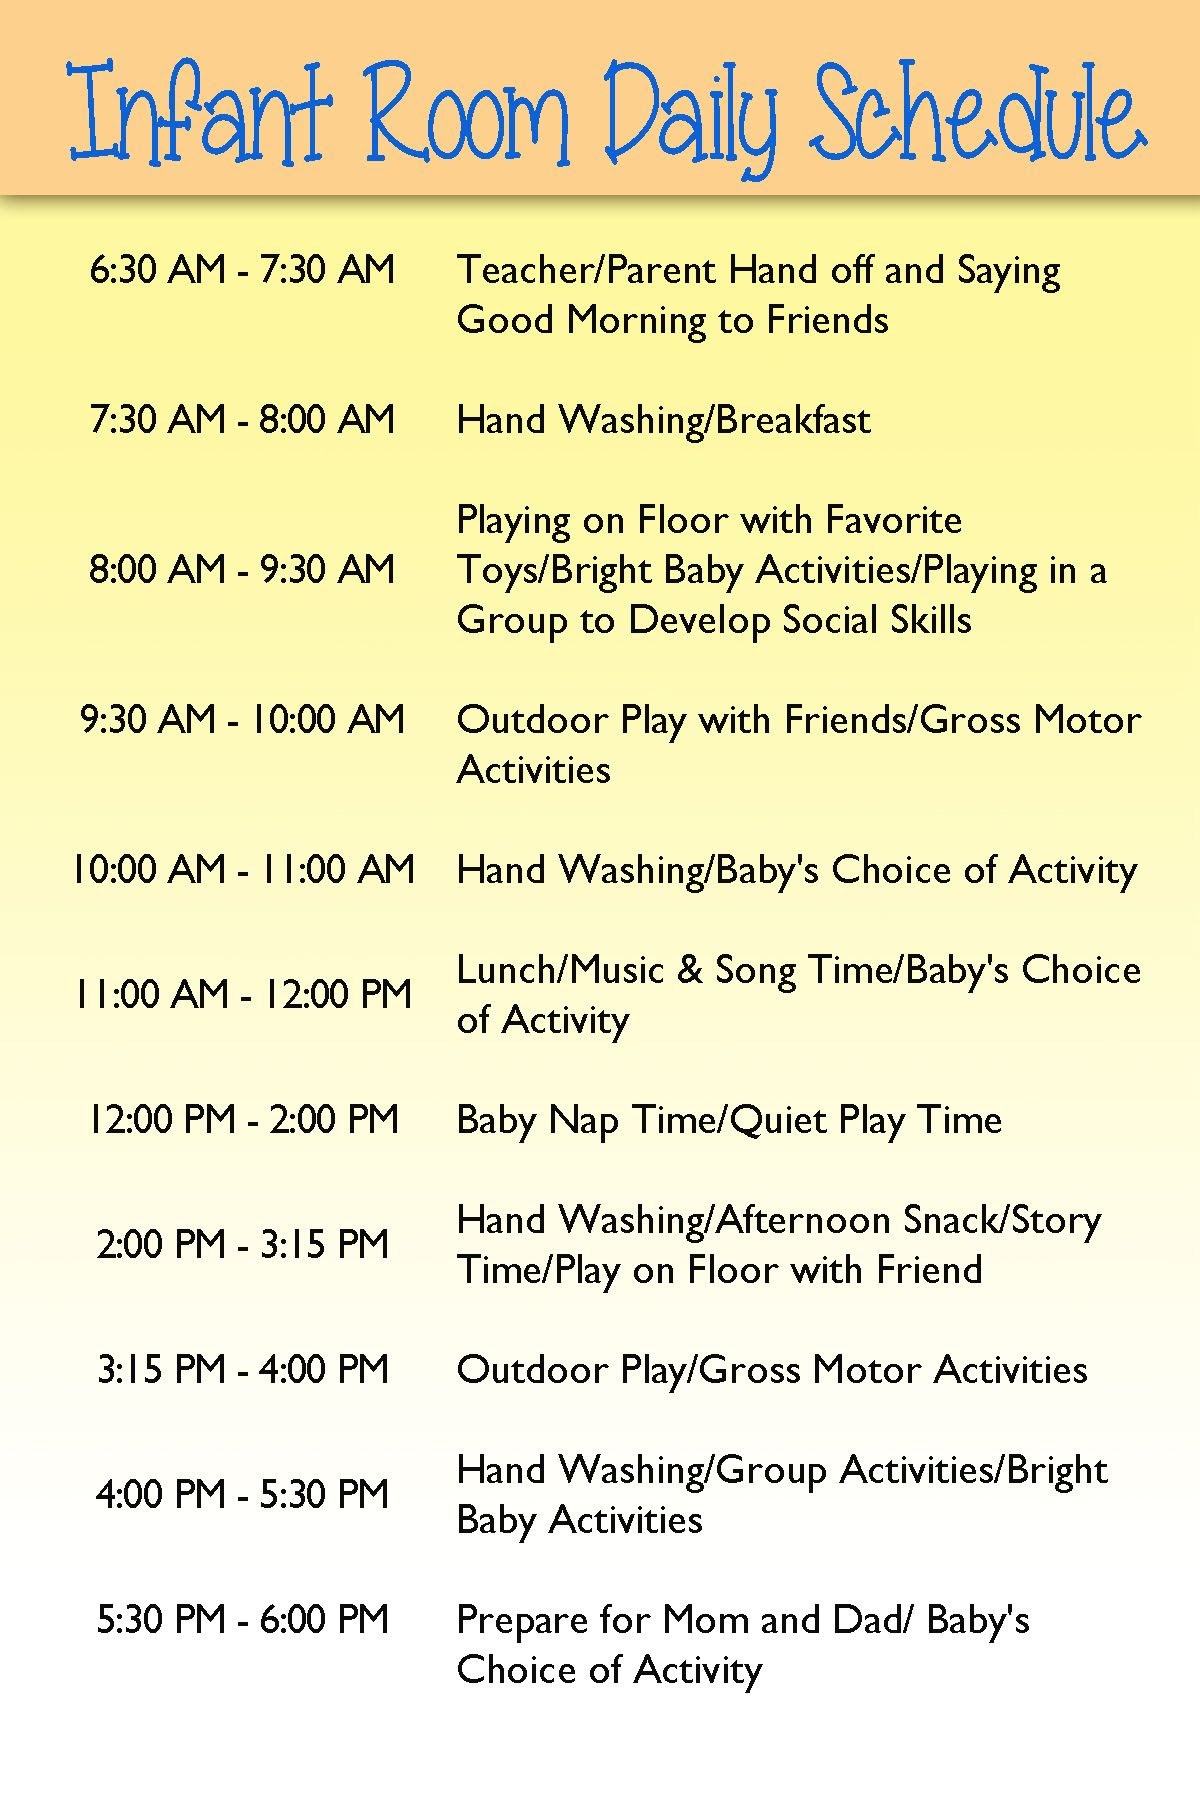 Infant Day care schedule | Infants | Pinterest | Day care, Home ...